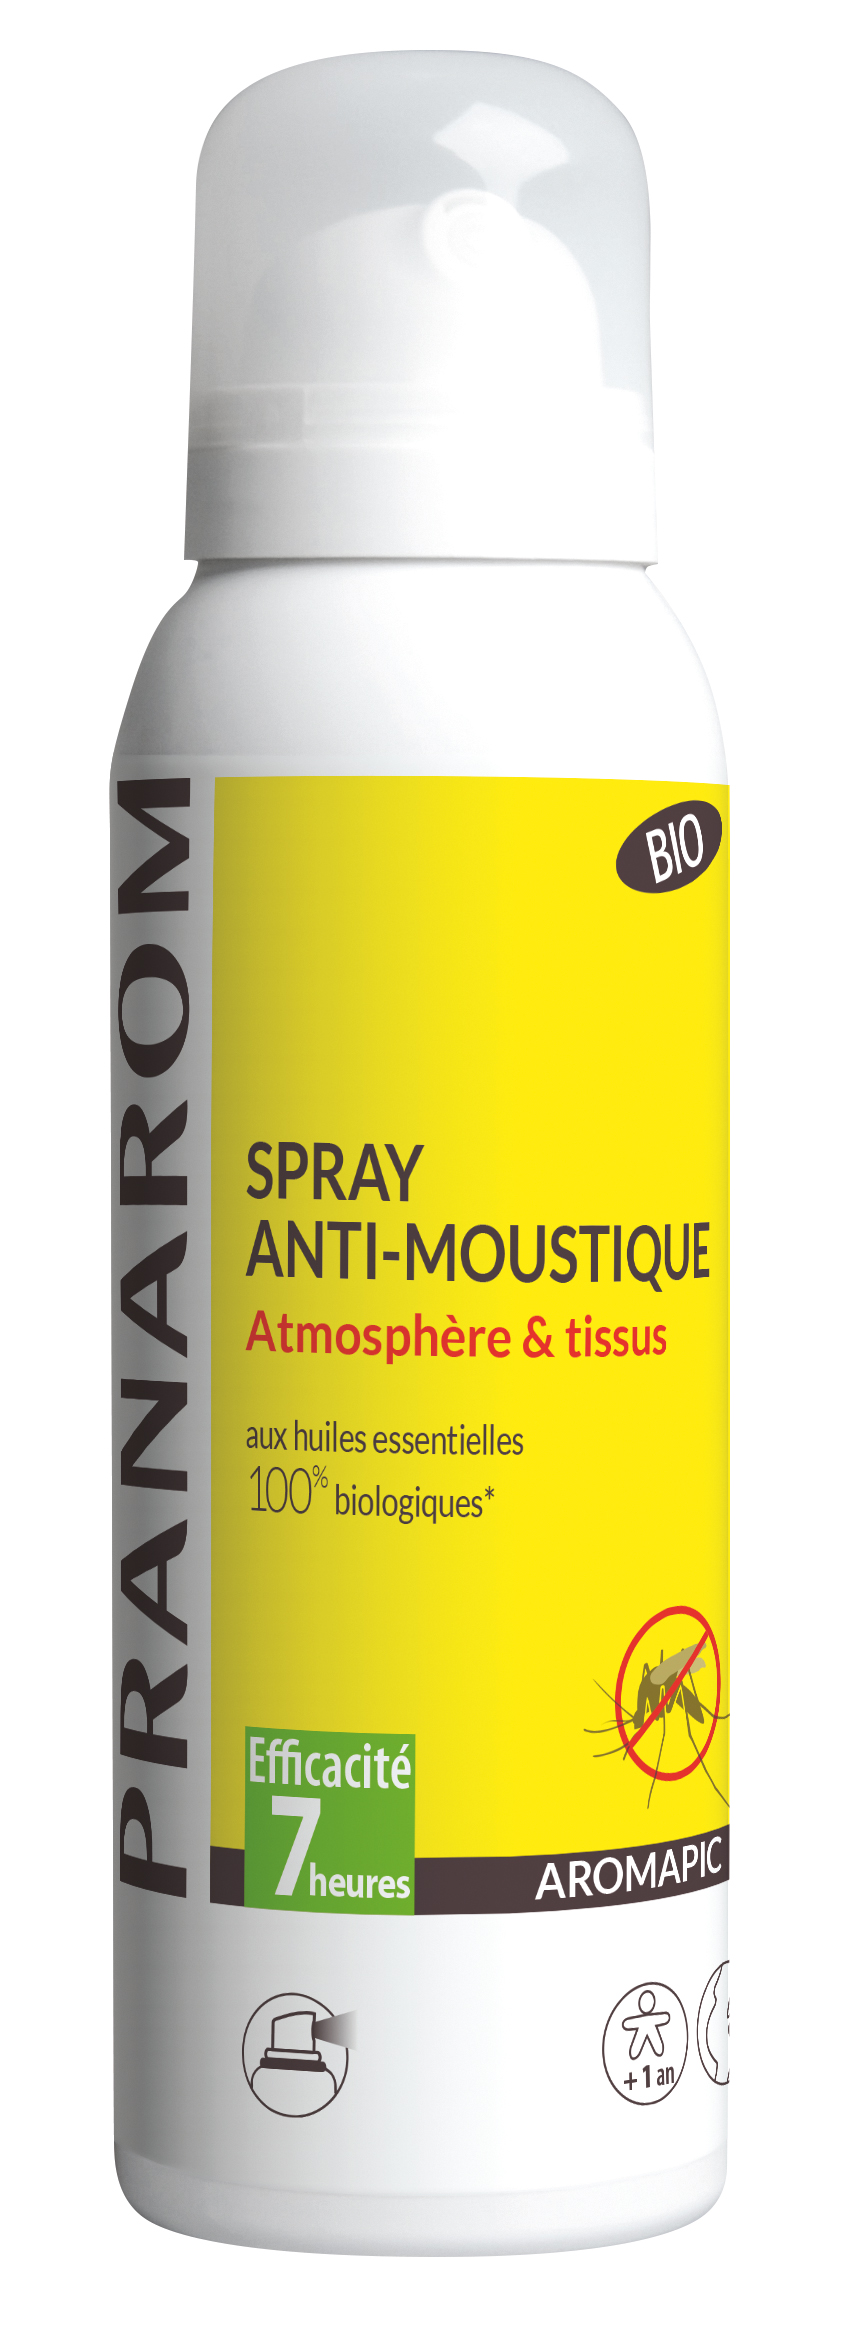 pranarom_Aromapic_Spray_atmospherique_anti_moustique